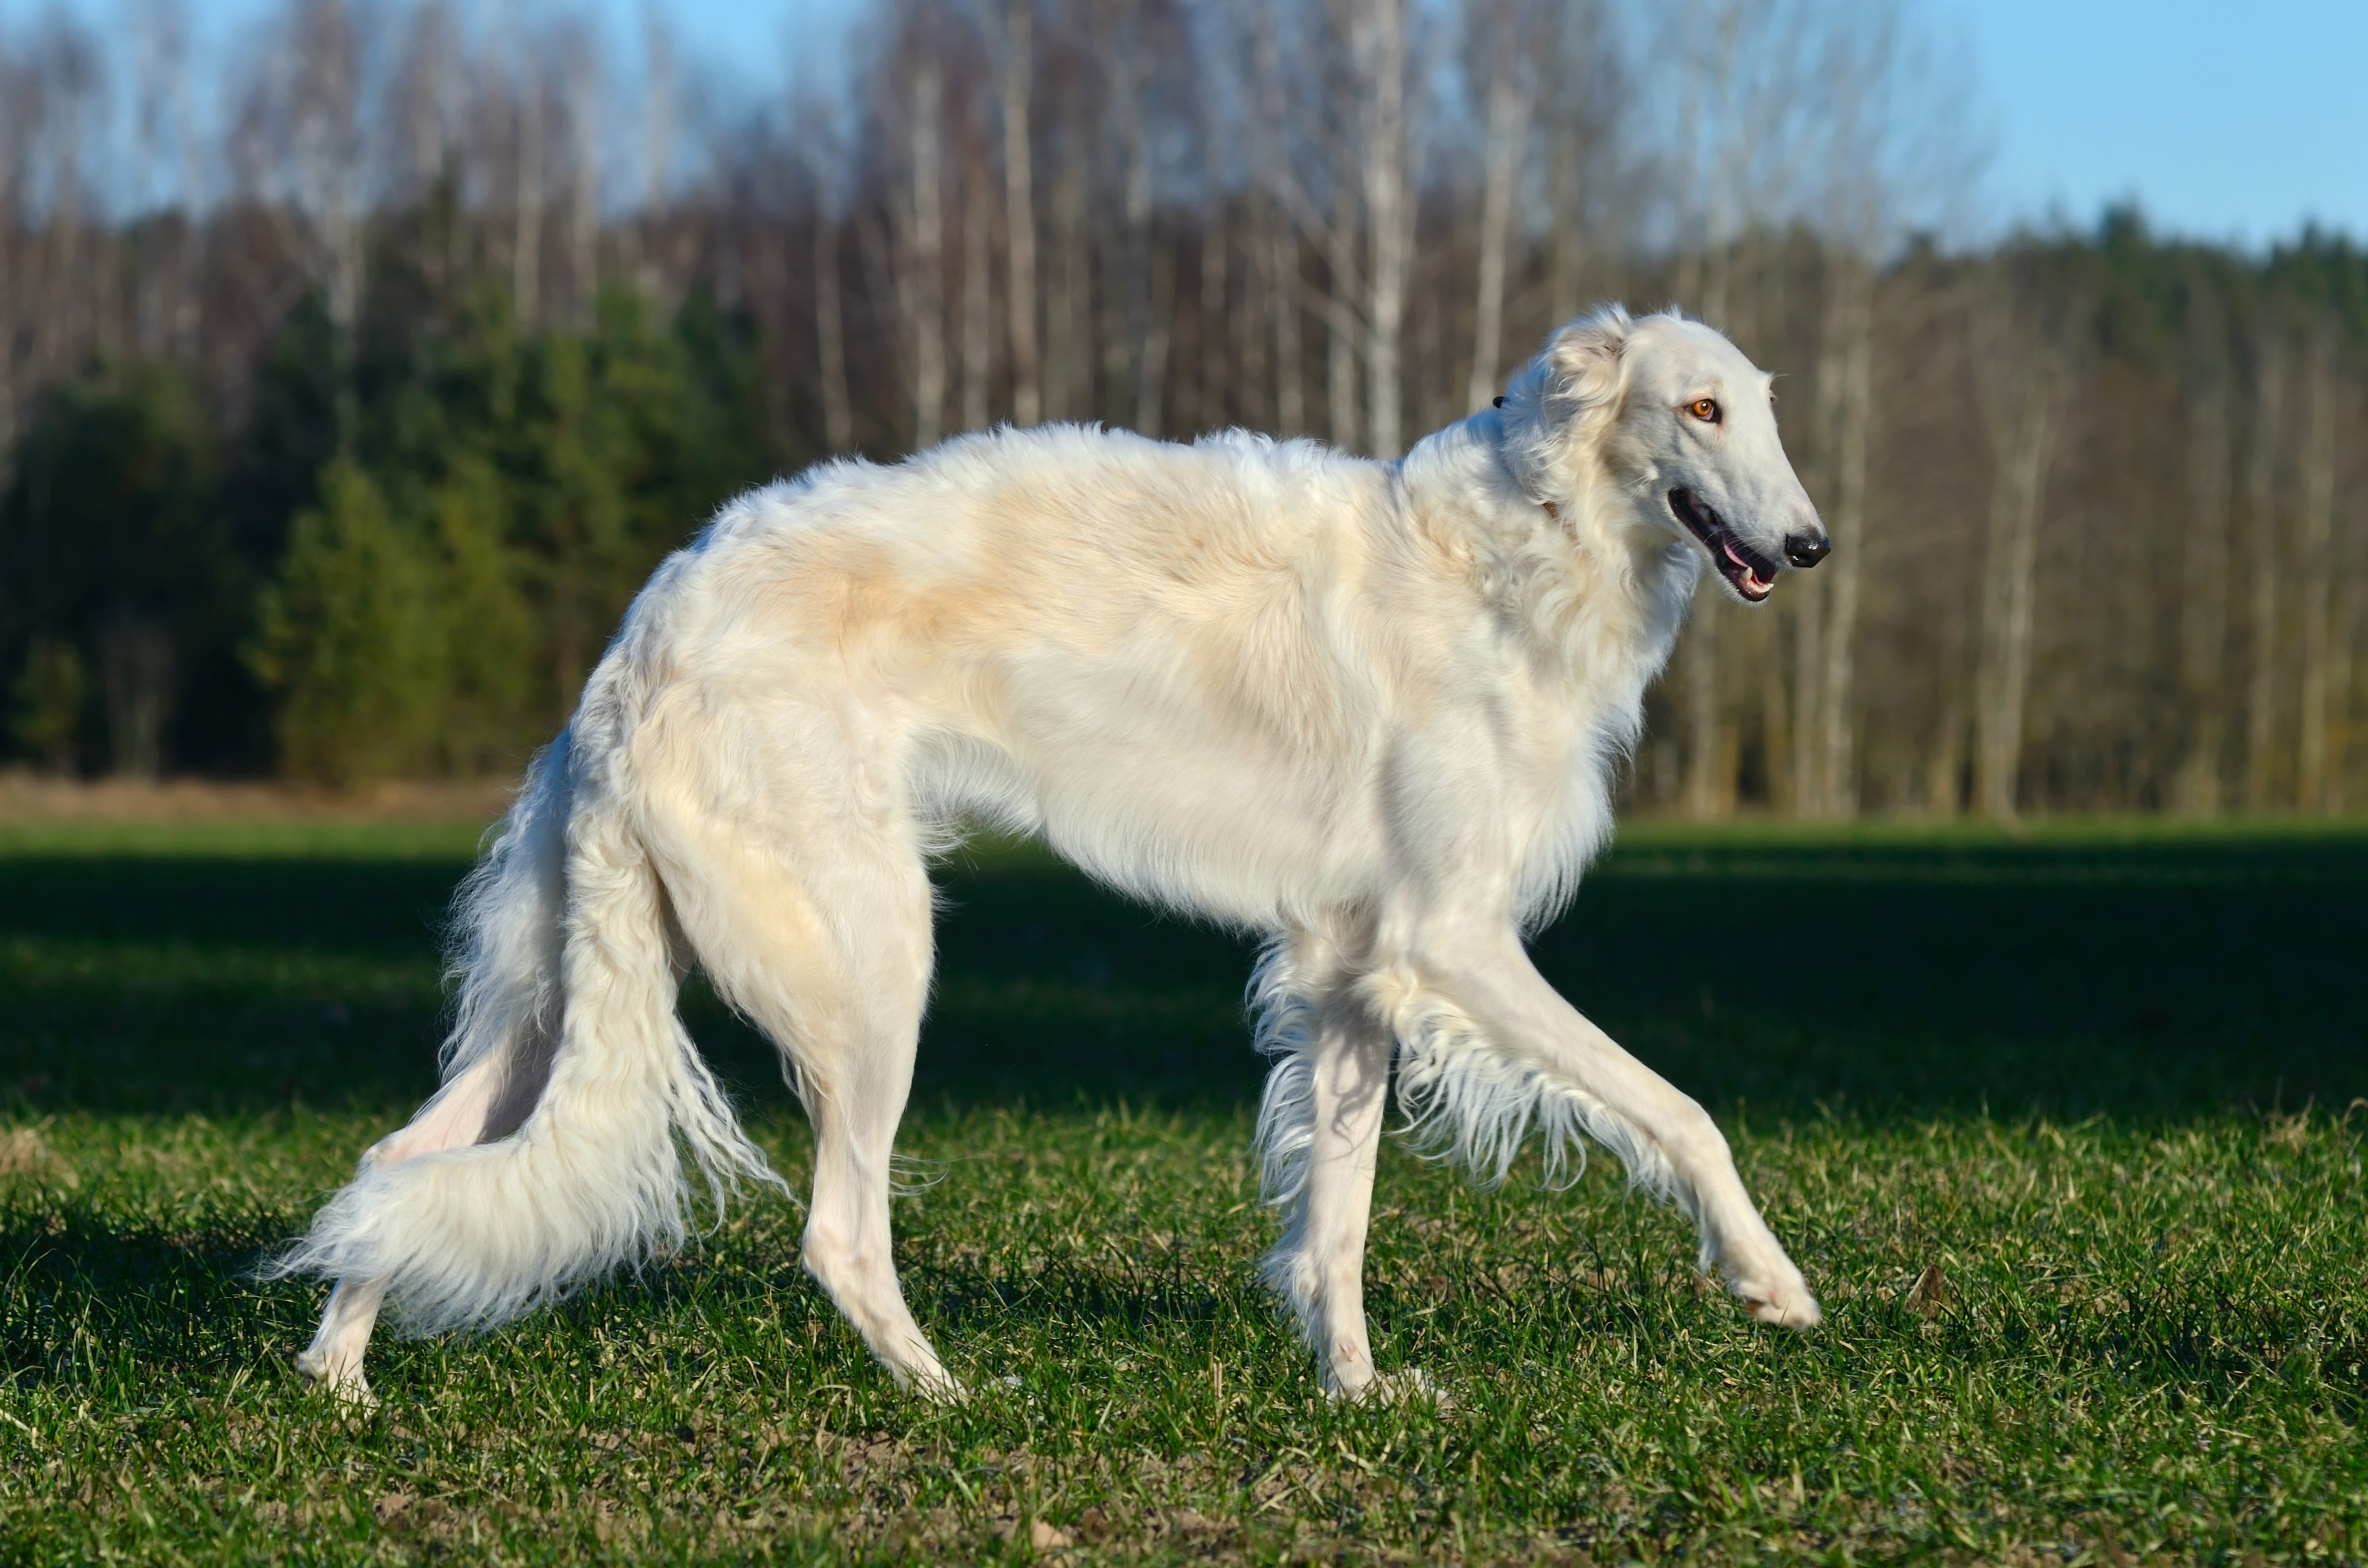 What's your Mutt DNA White Borzoi dog walking through a grassy yard with wooden fence in the background